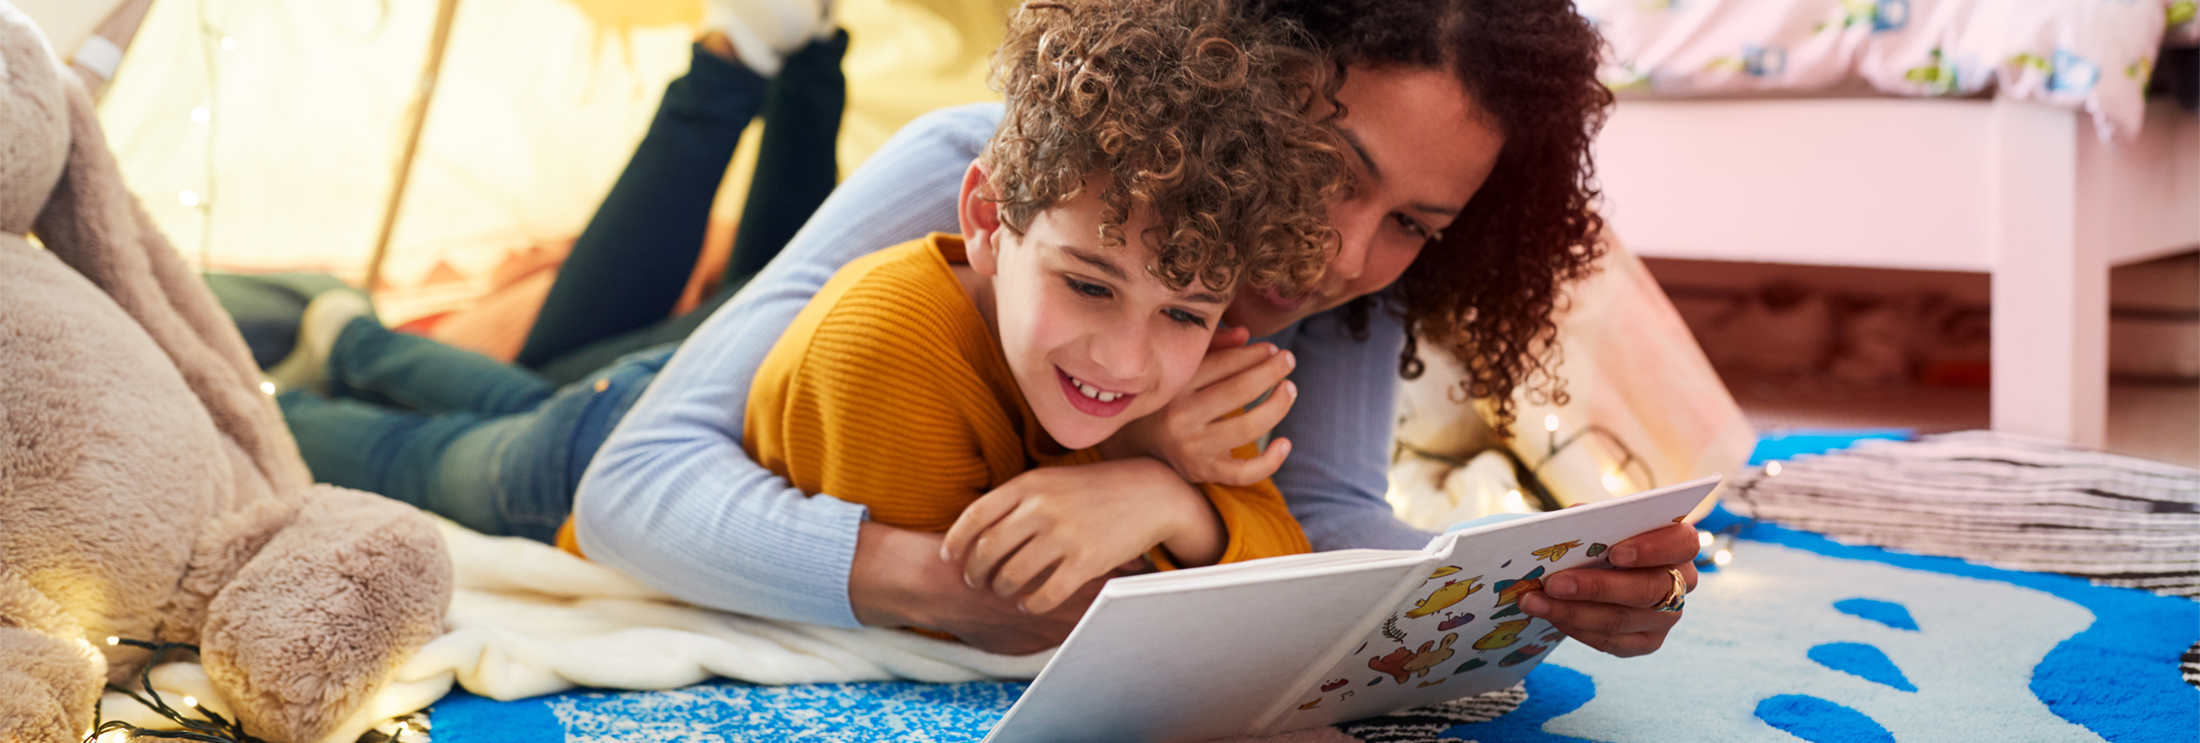 Fraser Experts Recommend the Best Autism, Mental Health and Special Needs Books for Kids and Adults